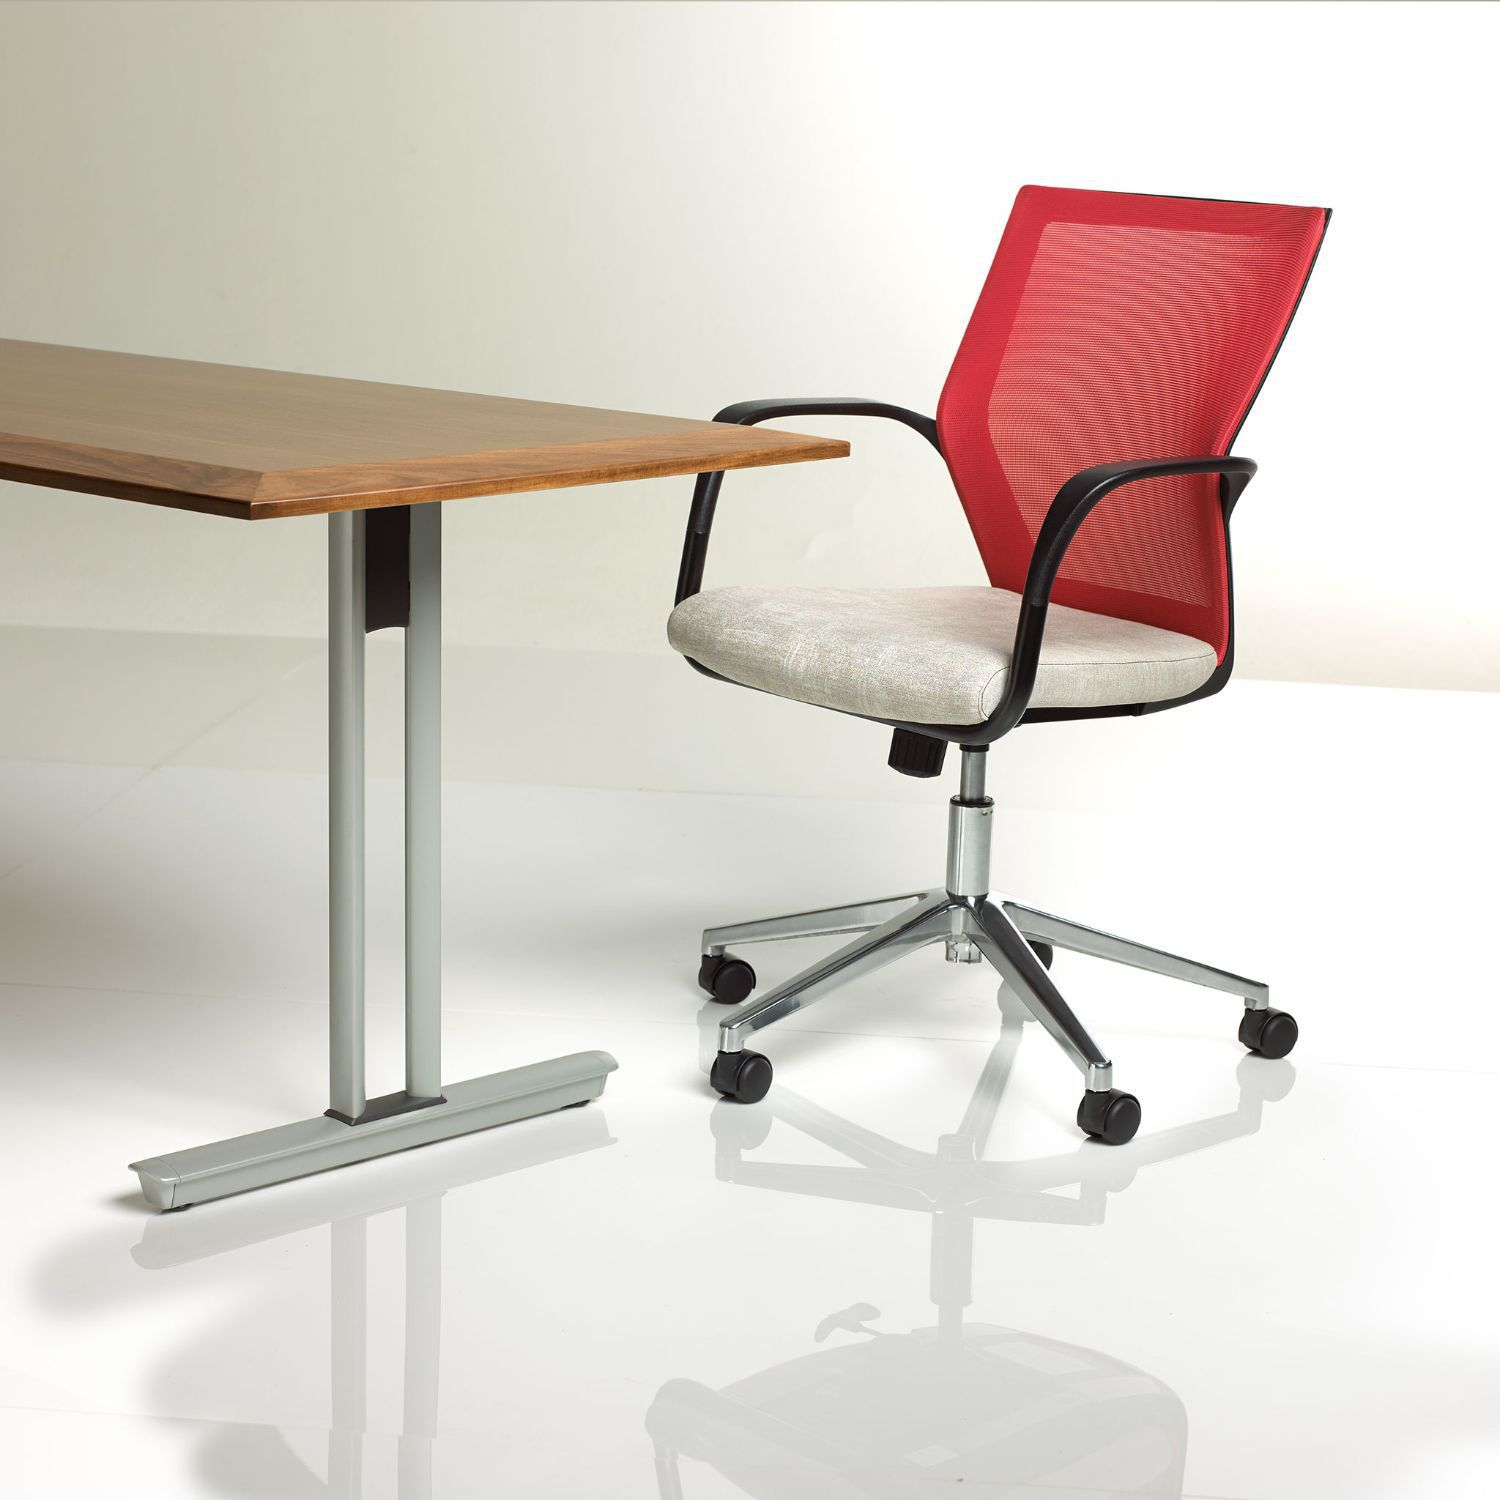 Ki Chairs Contemporary Office Chair On Casters Star Base With Armrests